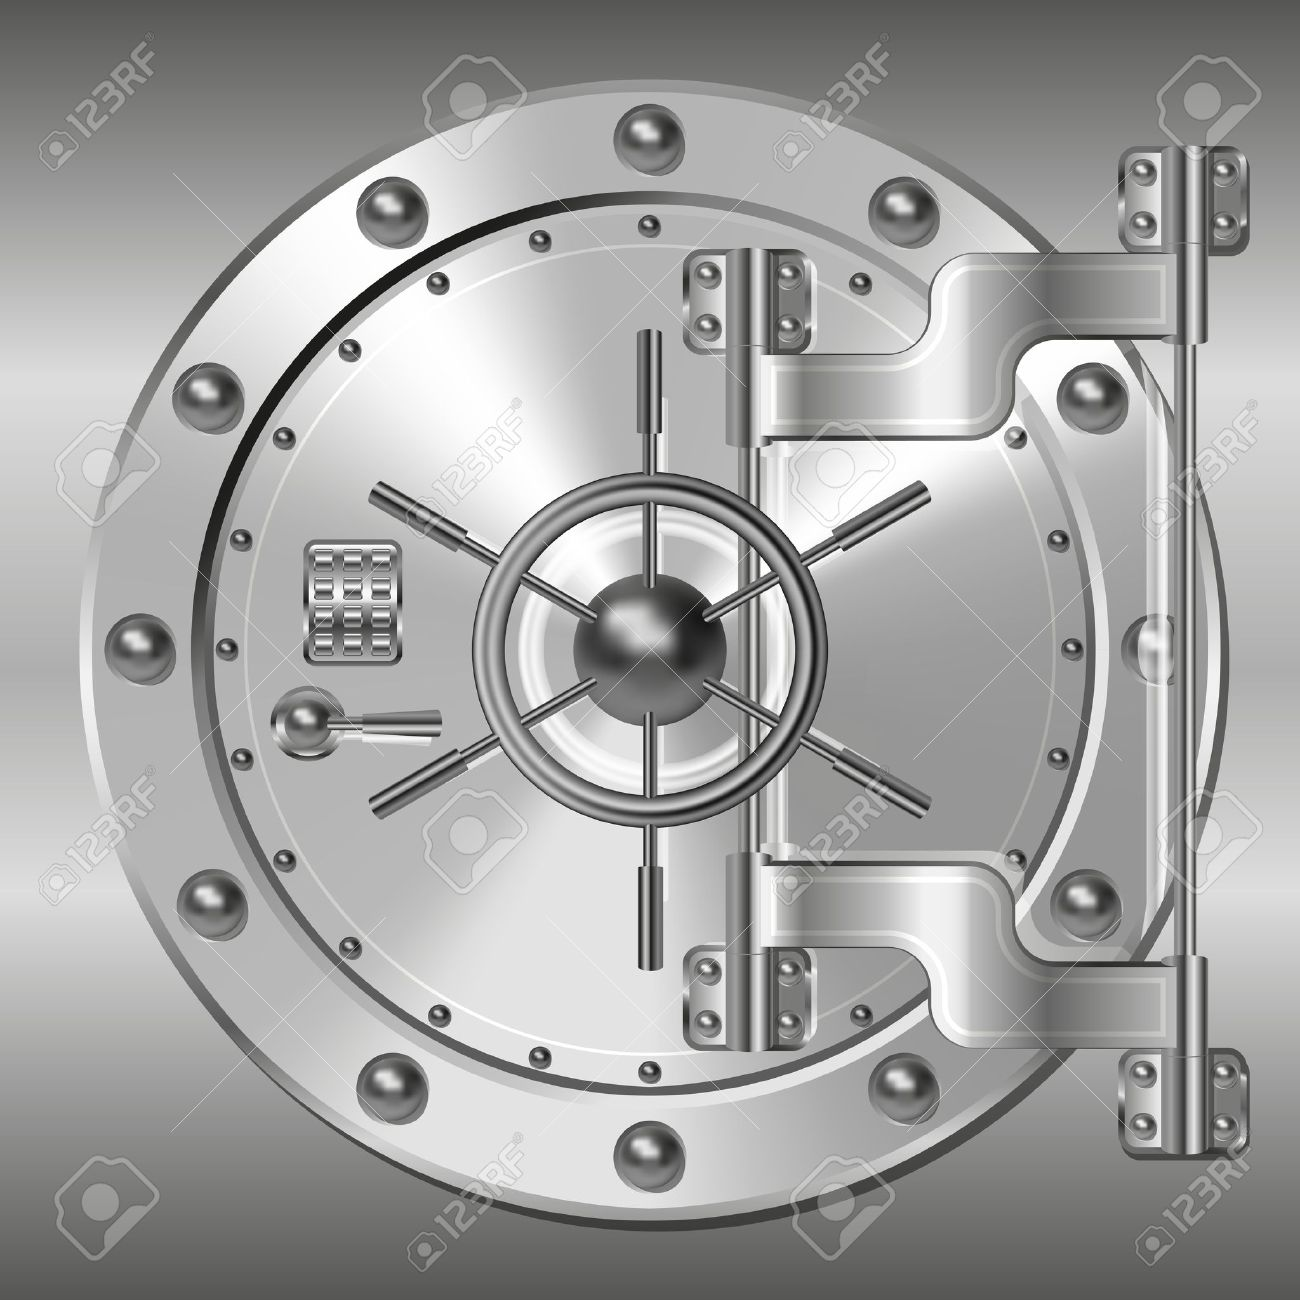 Bank vault door clipart jpg library download Bank Vault Door Royalty Free Cliparts, Vectors, And Stock ... jpg library download